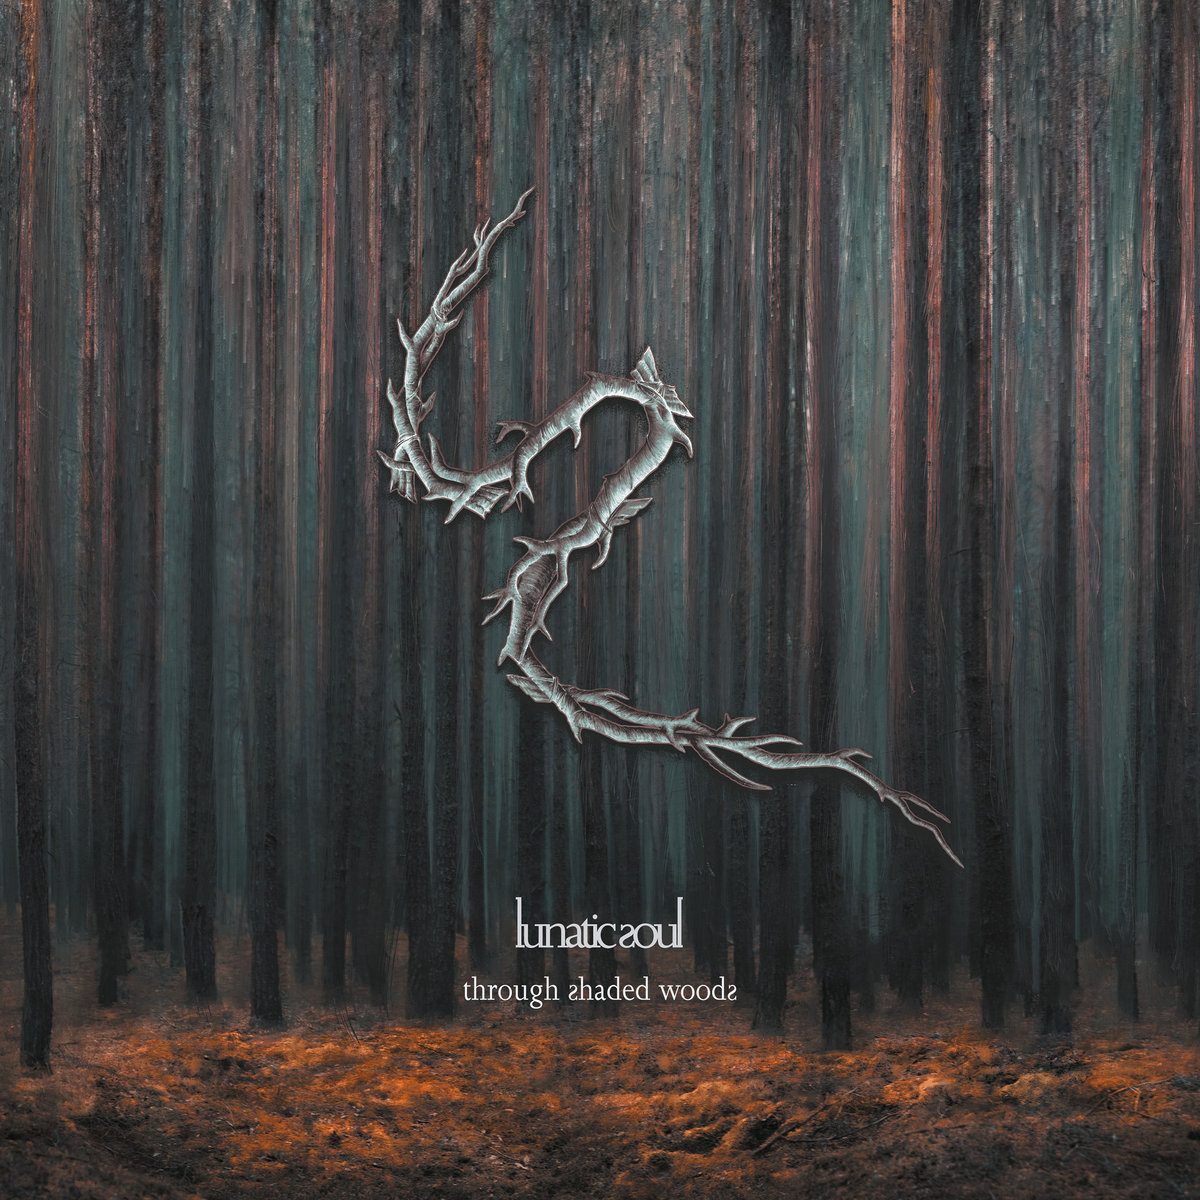 Lunatic Soul: Through Shaded Woods